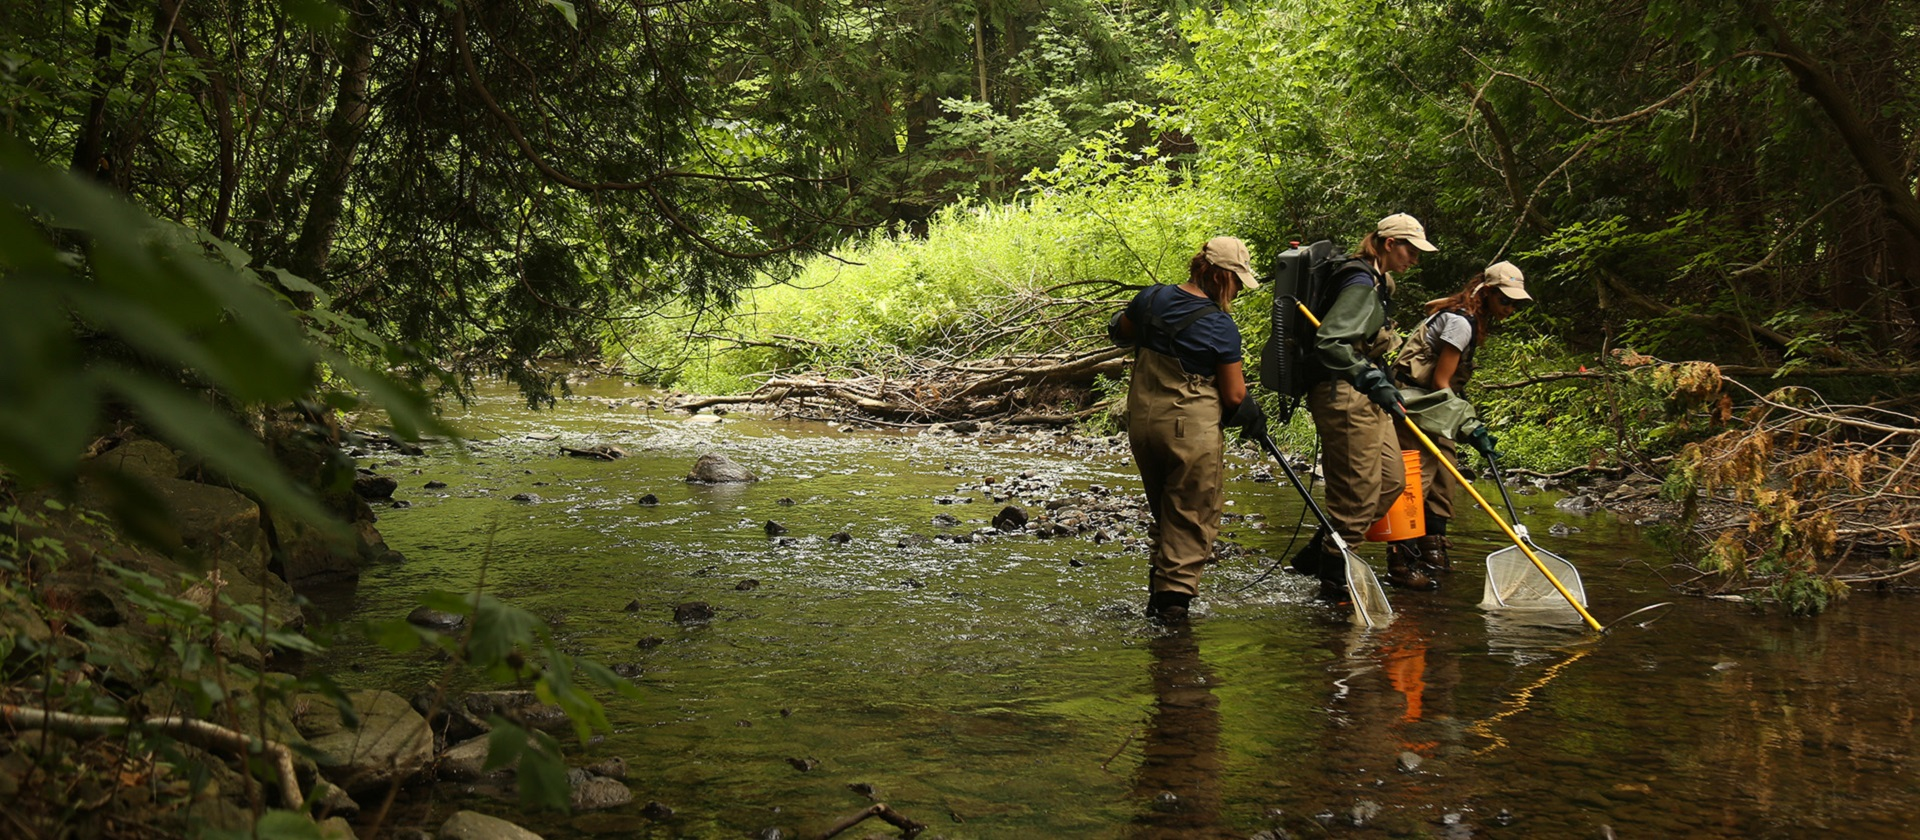 TRCA environmental monitoring staff electrofishing in a stream